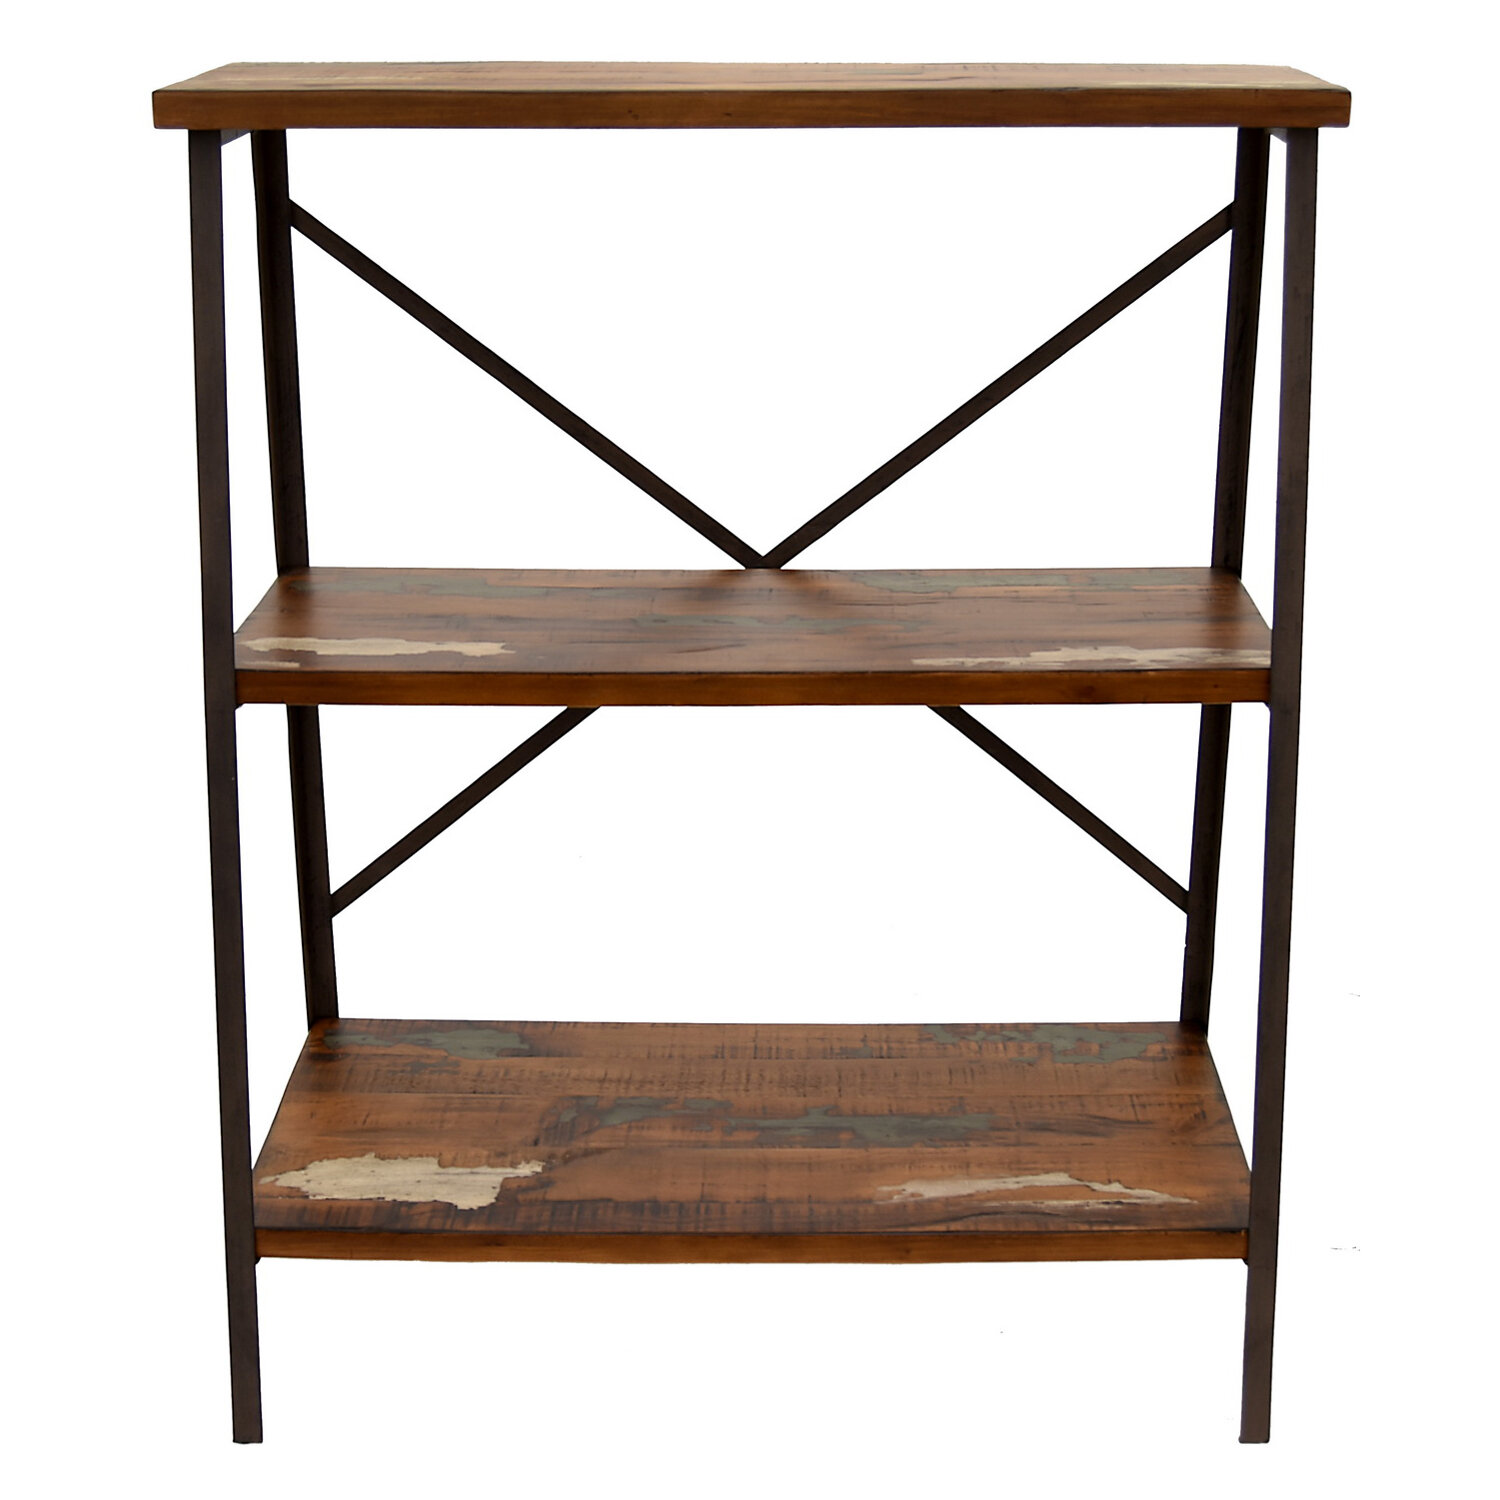 to view gallery bookcases most bookcase attachment storages furniture photos of units accent wooden display storage shelving displaying up pertaining wood date tier